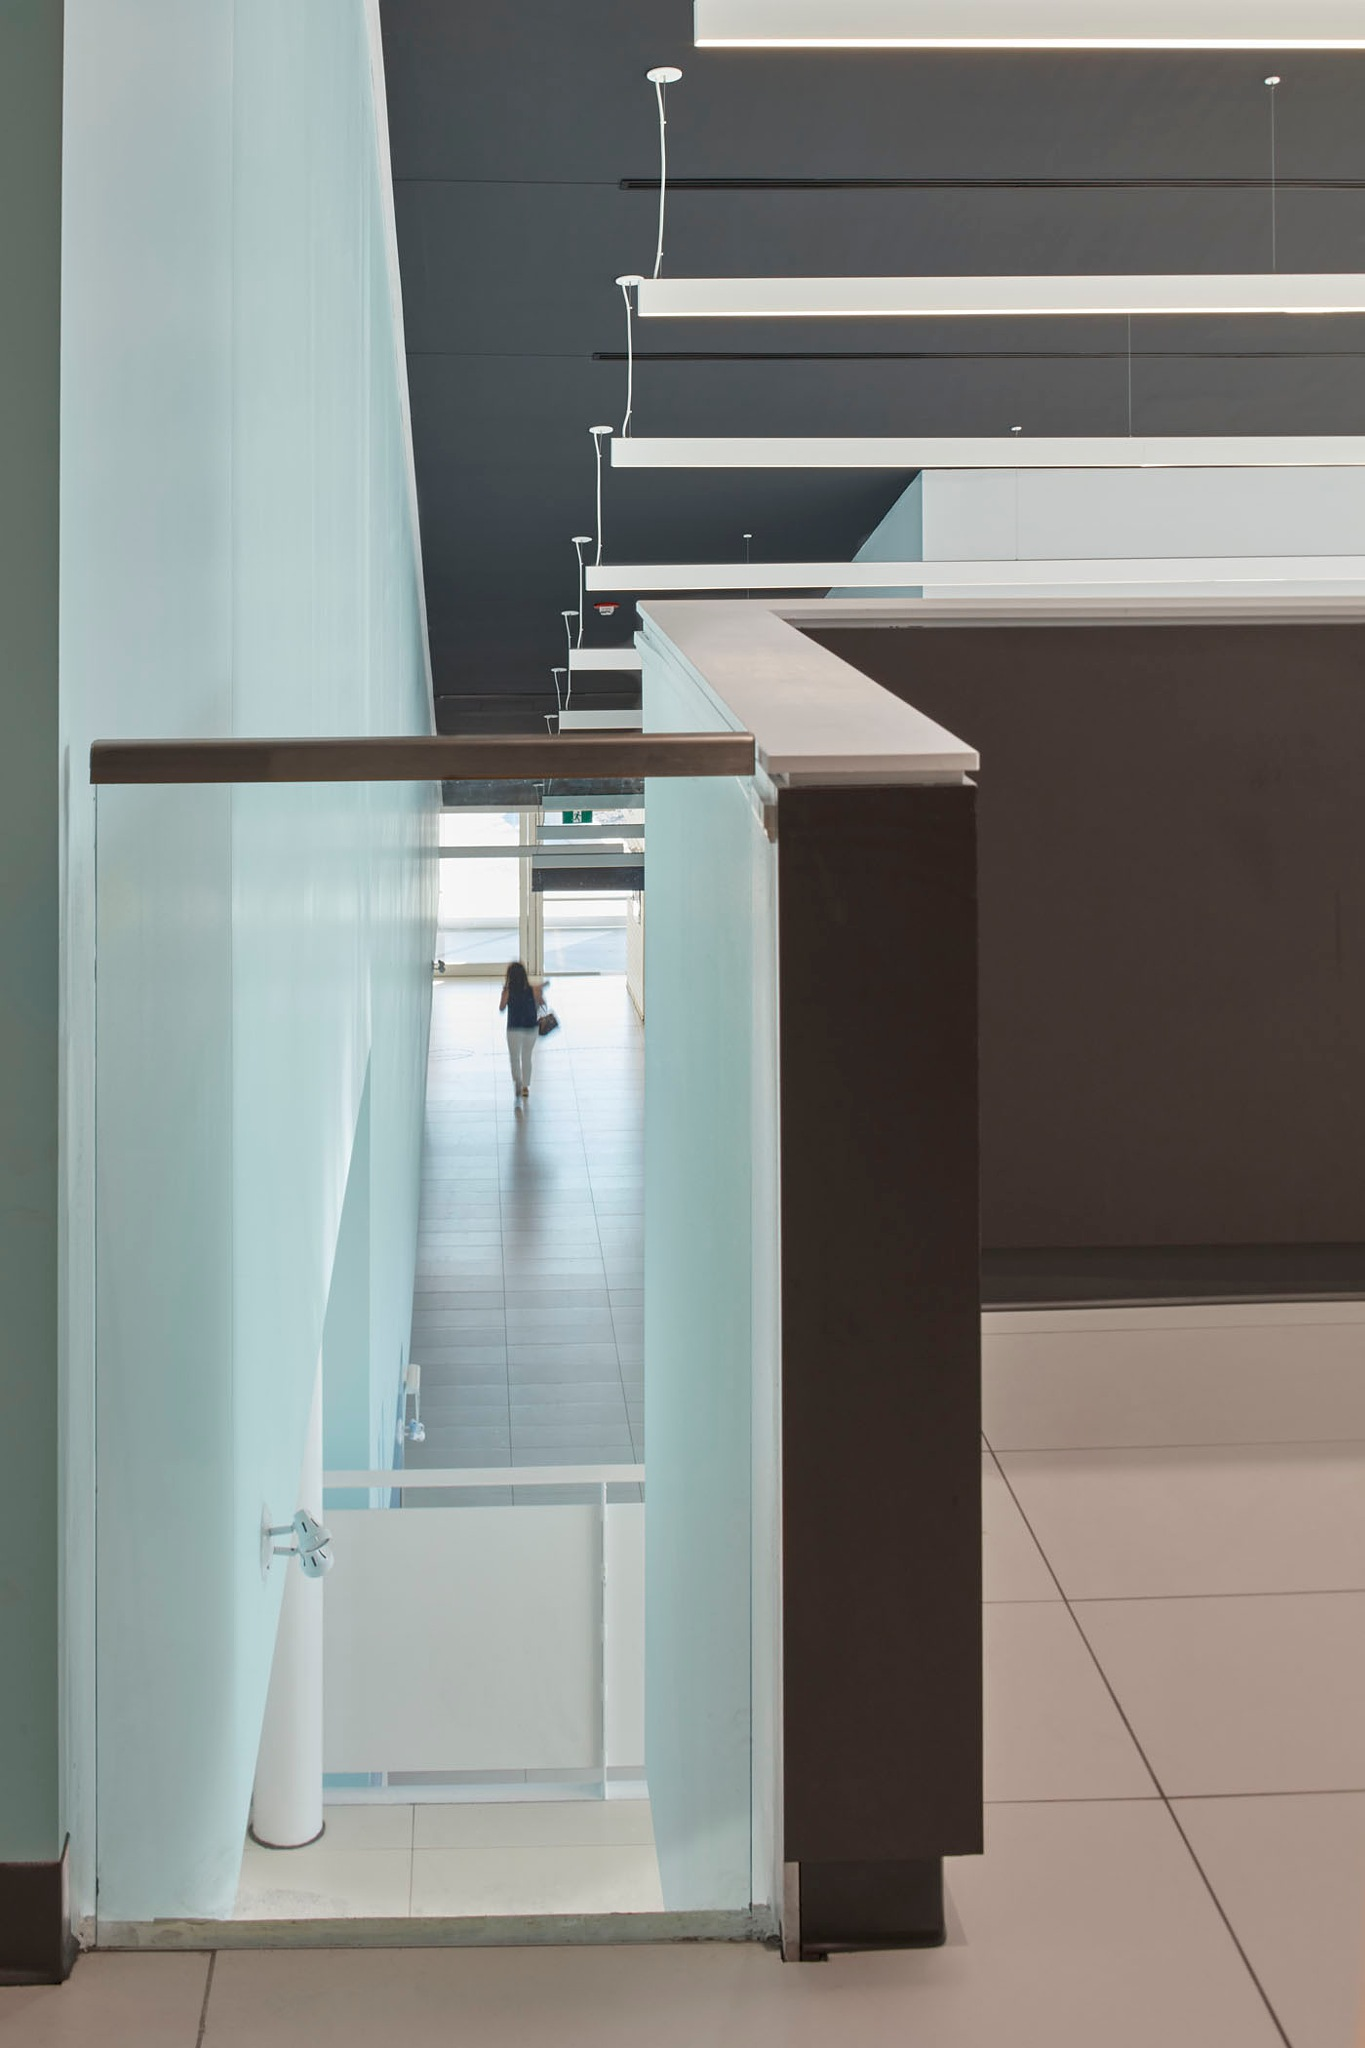 Victoria Road Recreational Centre. Guelph, Ontario. CS&P Architects by Michael van Leur Photography